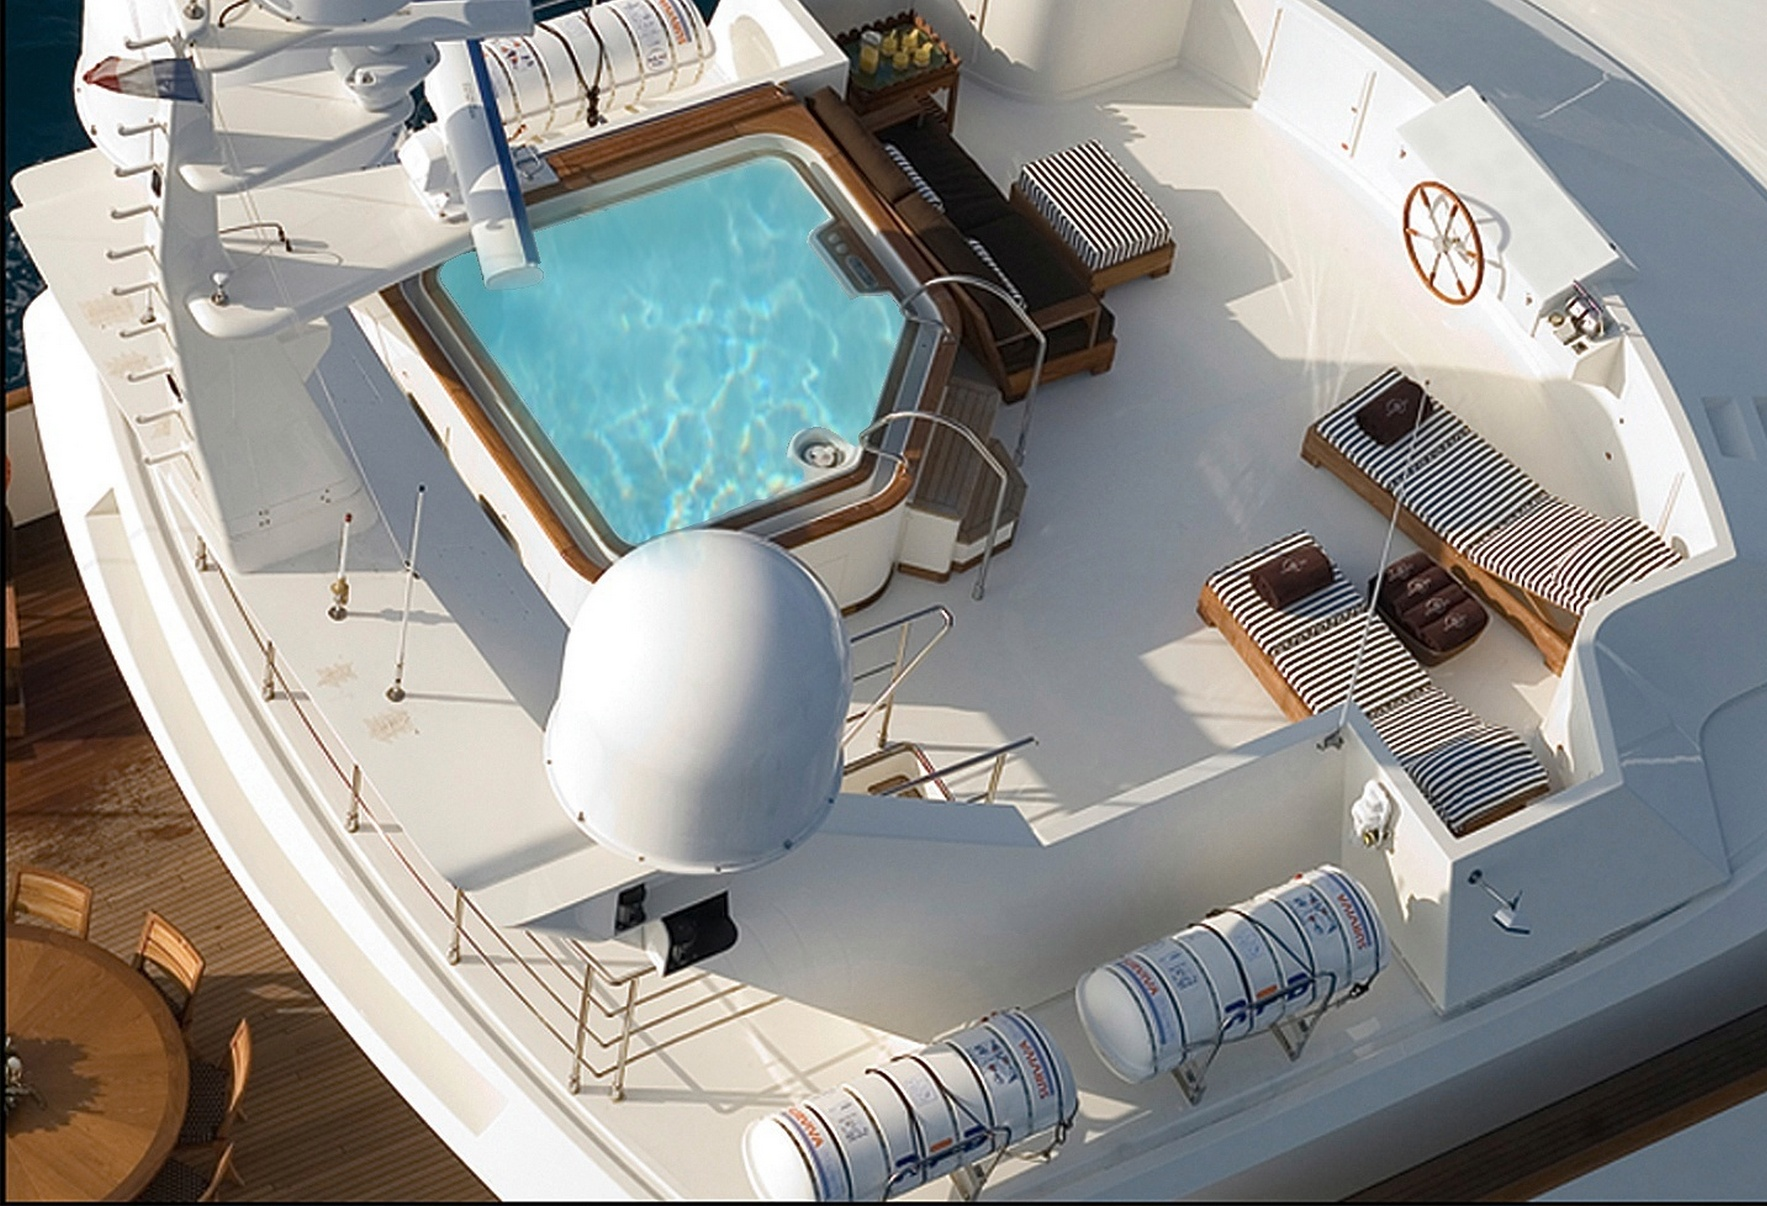 SEA DREAM Aerial View of the Jacuzzi